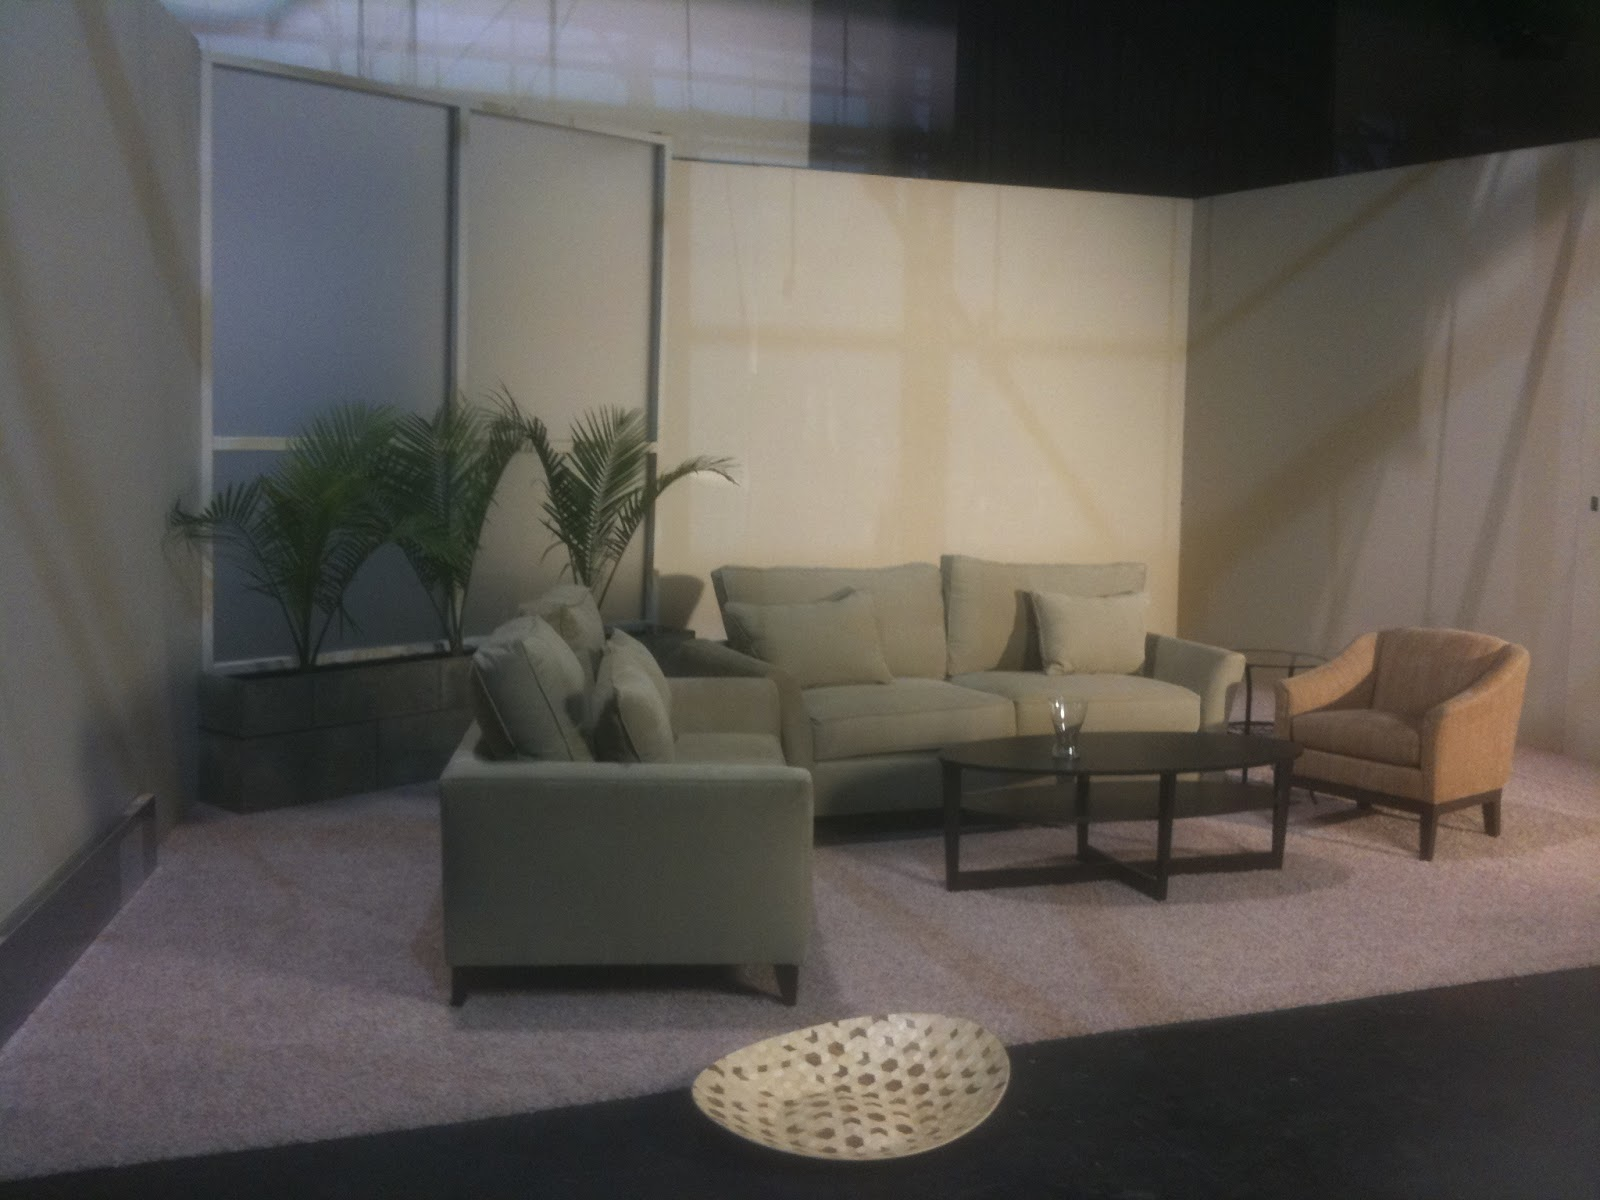 thb construction tv studio set living room fabricated